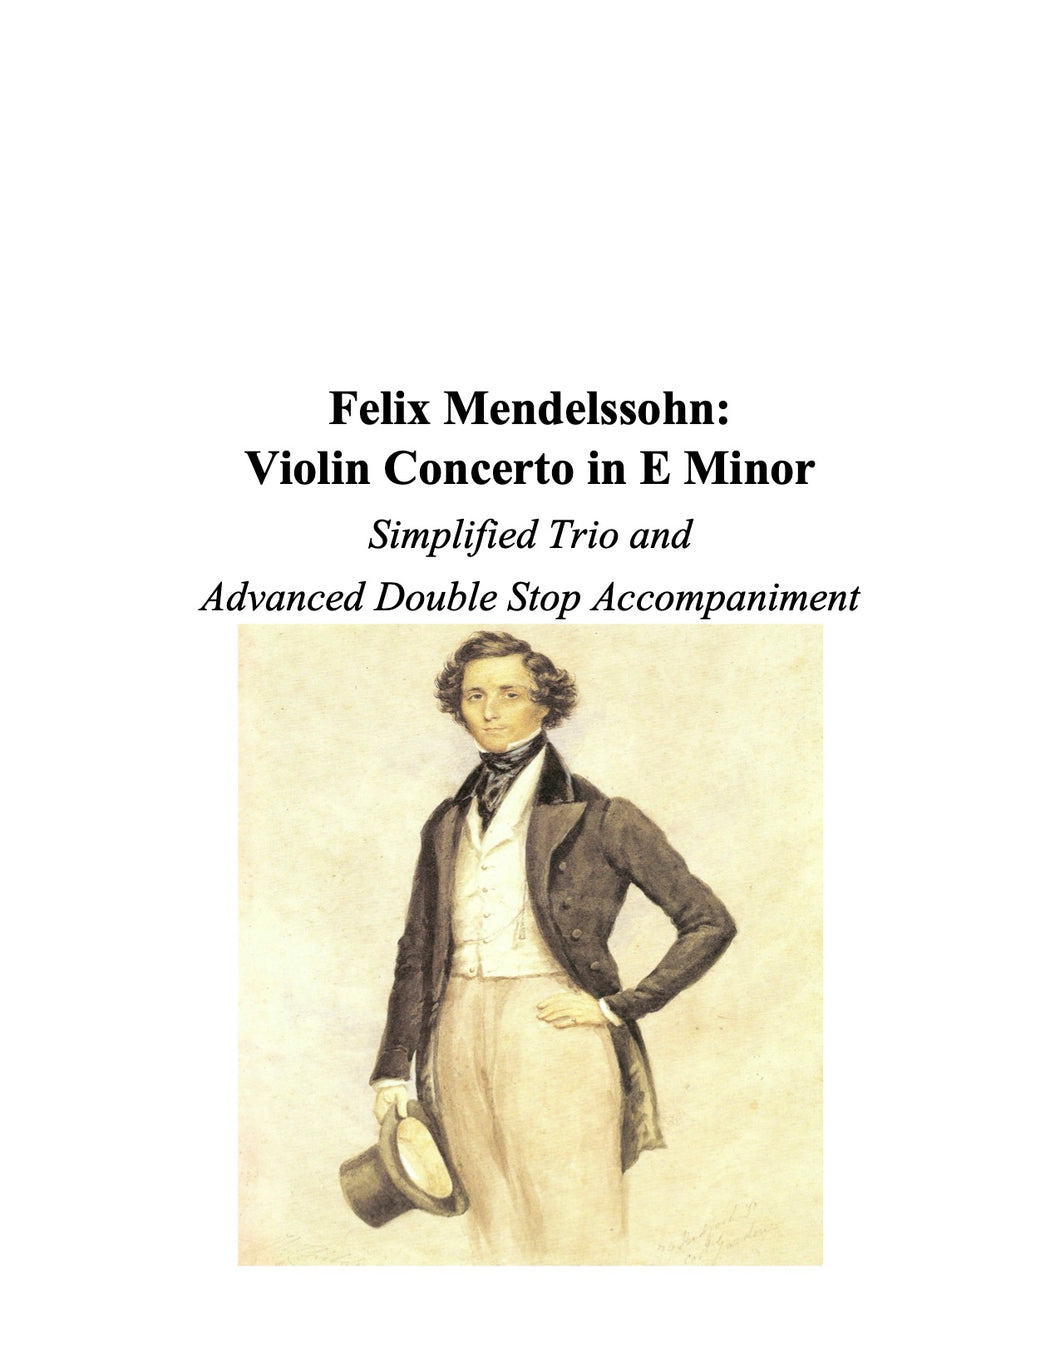 106 - The Mendelssohn Violin Concerto: Simplified Trio and Advanced Double Stop Accompaniment